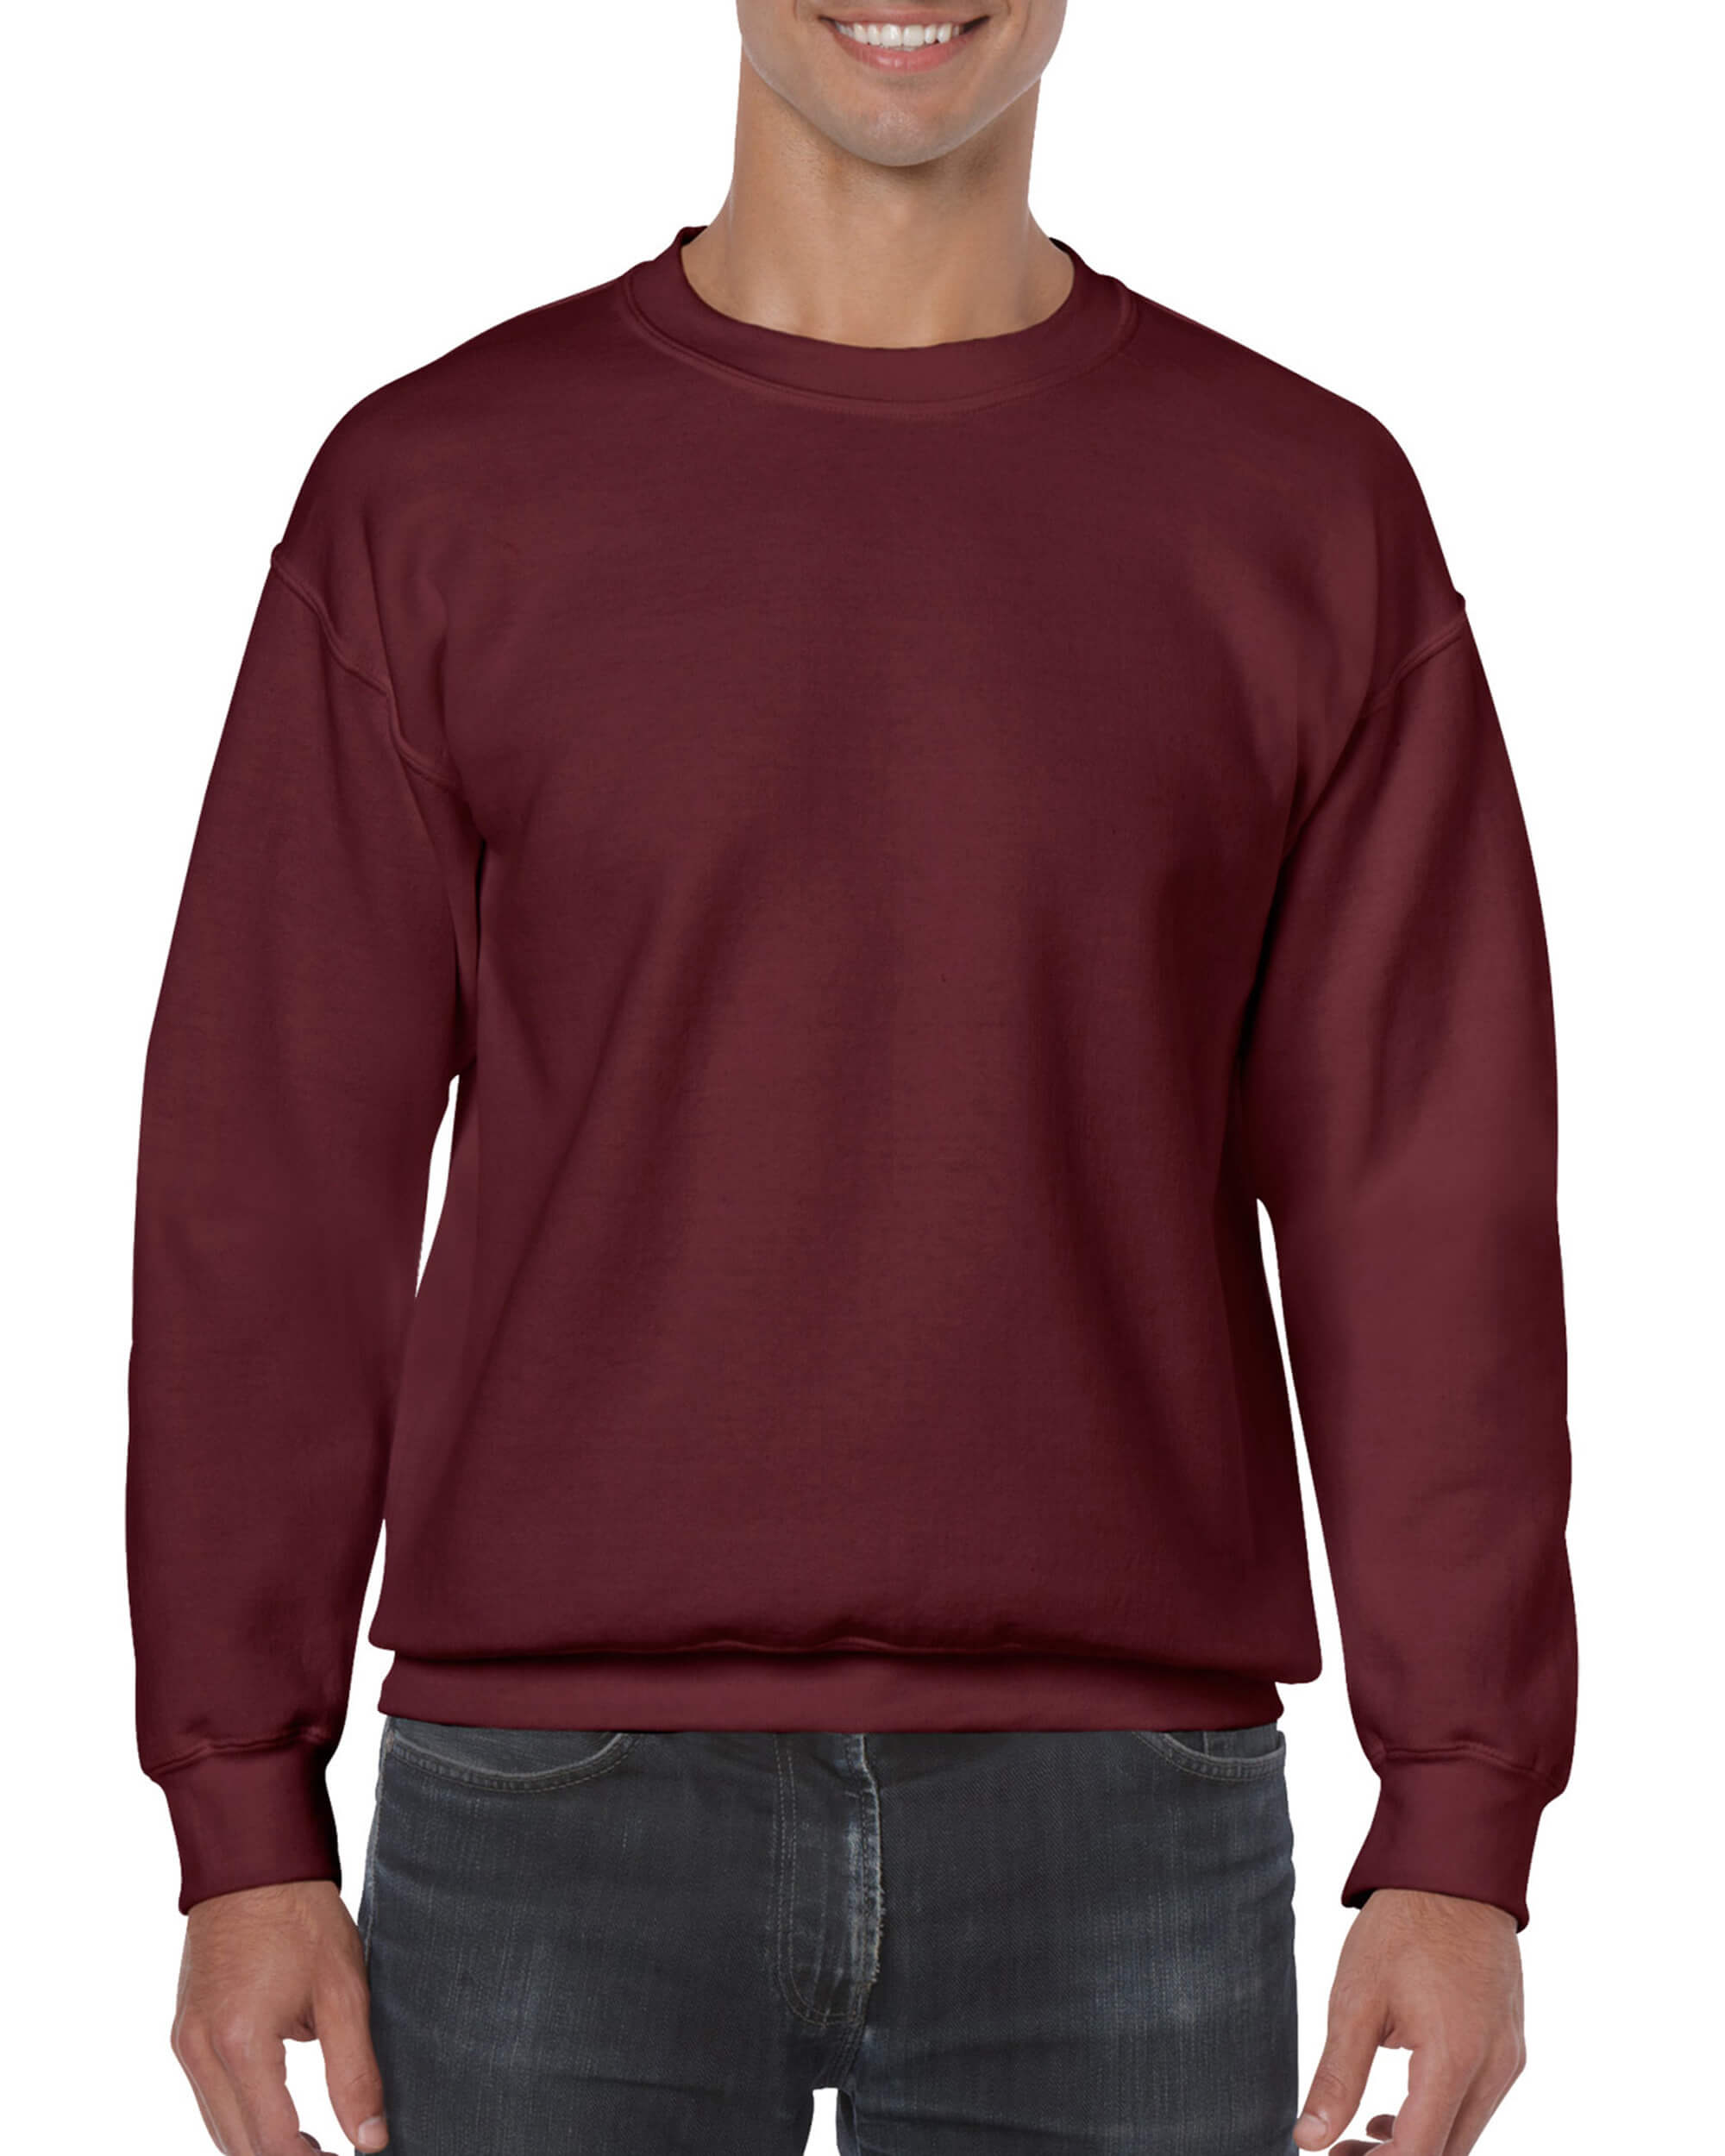 Maroon Crew Neck Sweater • T-Shirt Explosion 21718fb5d1d4